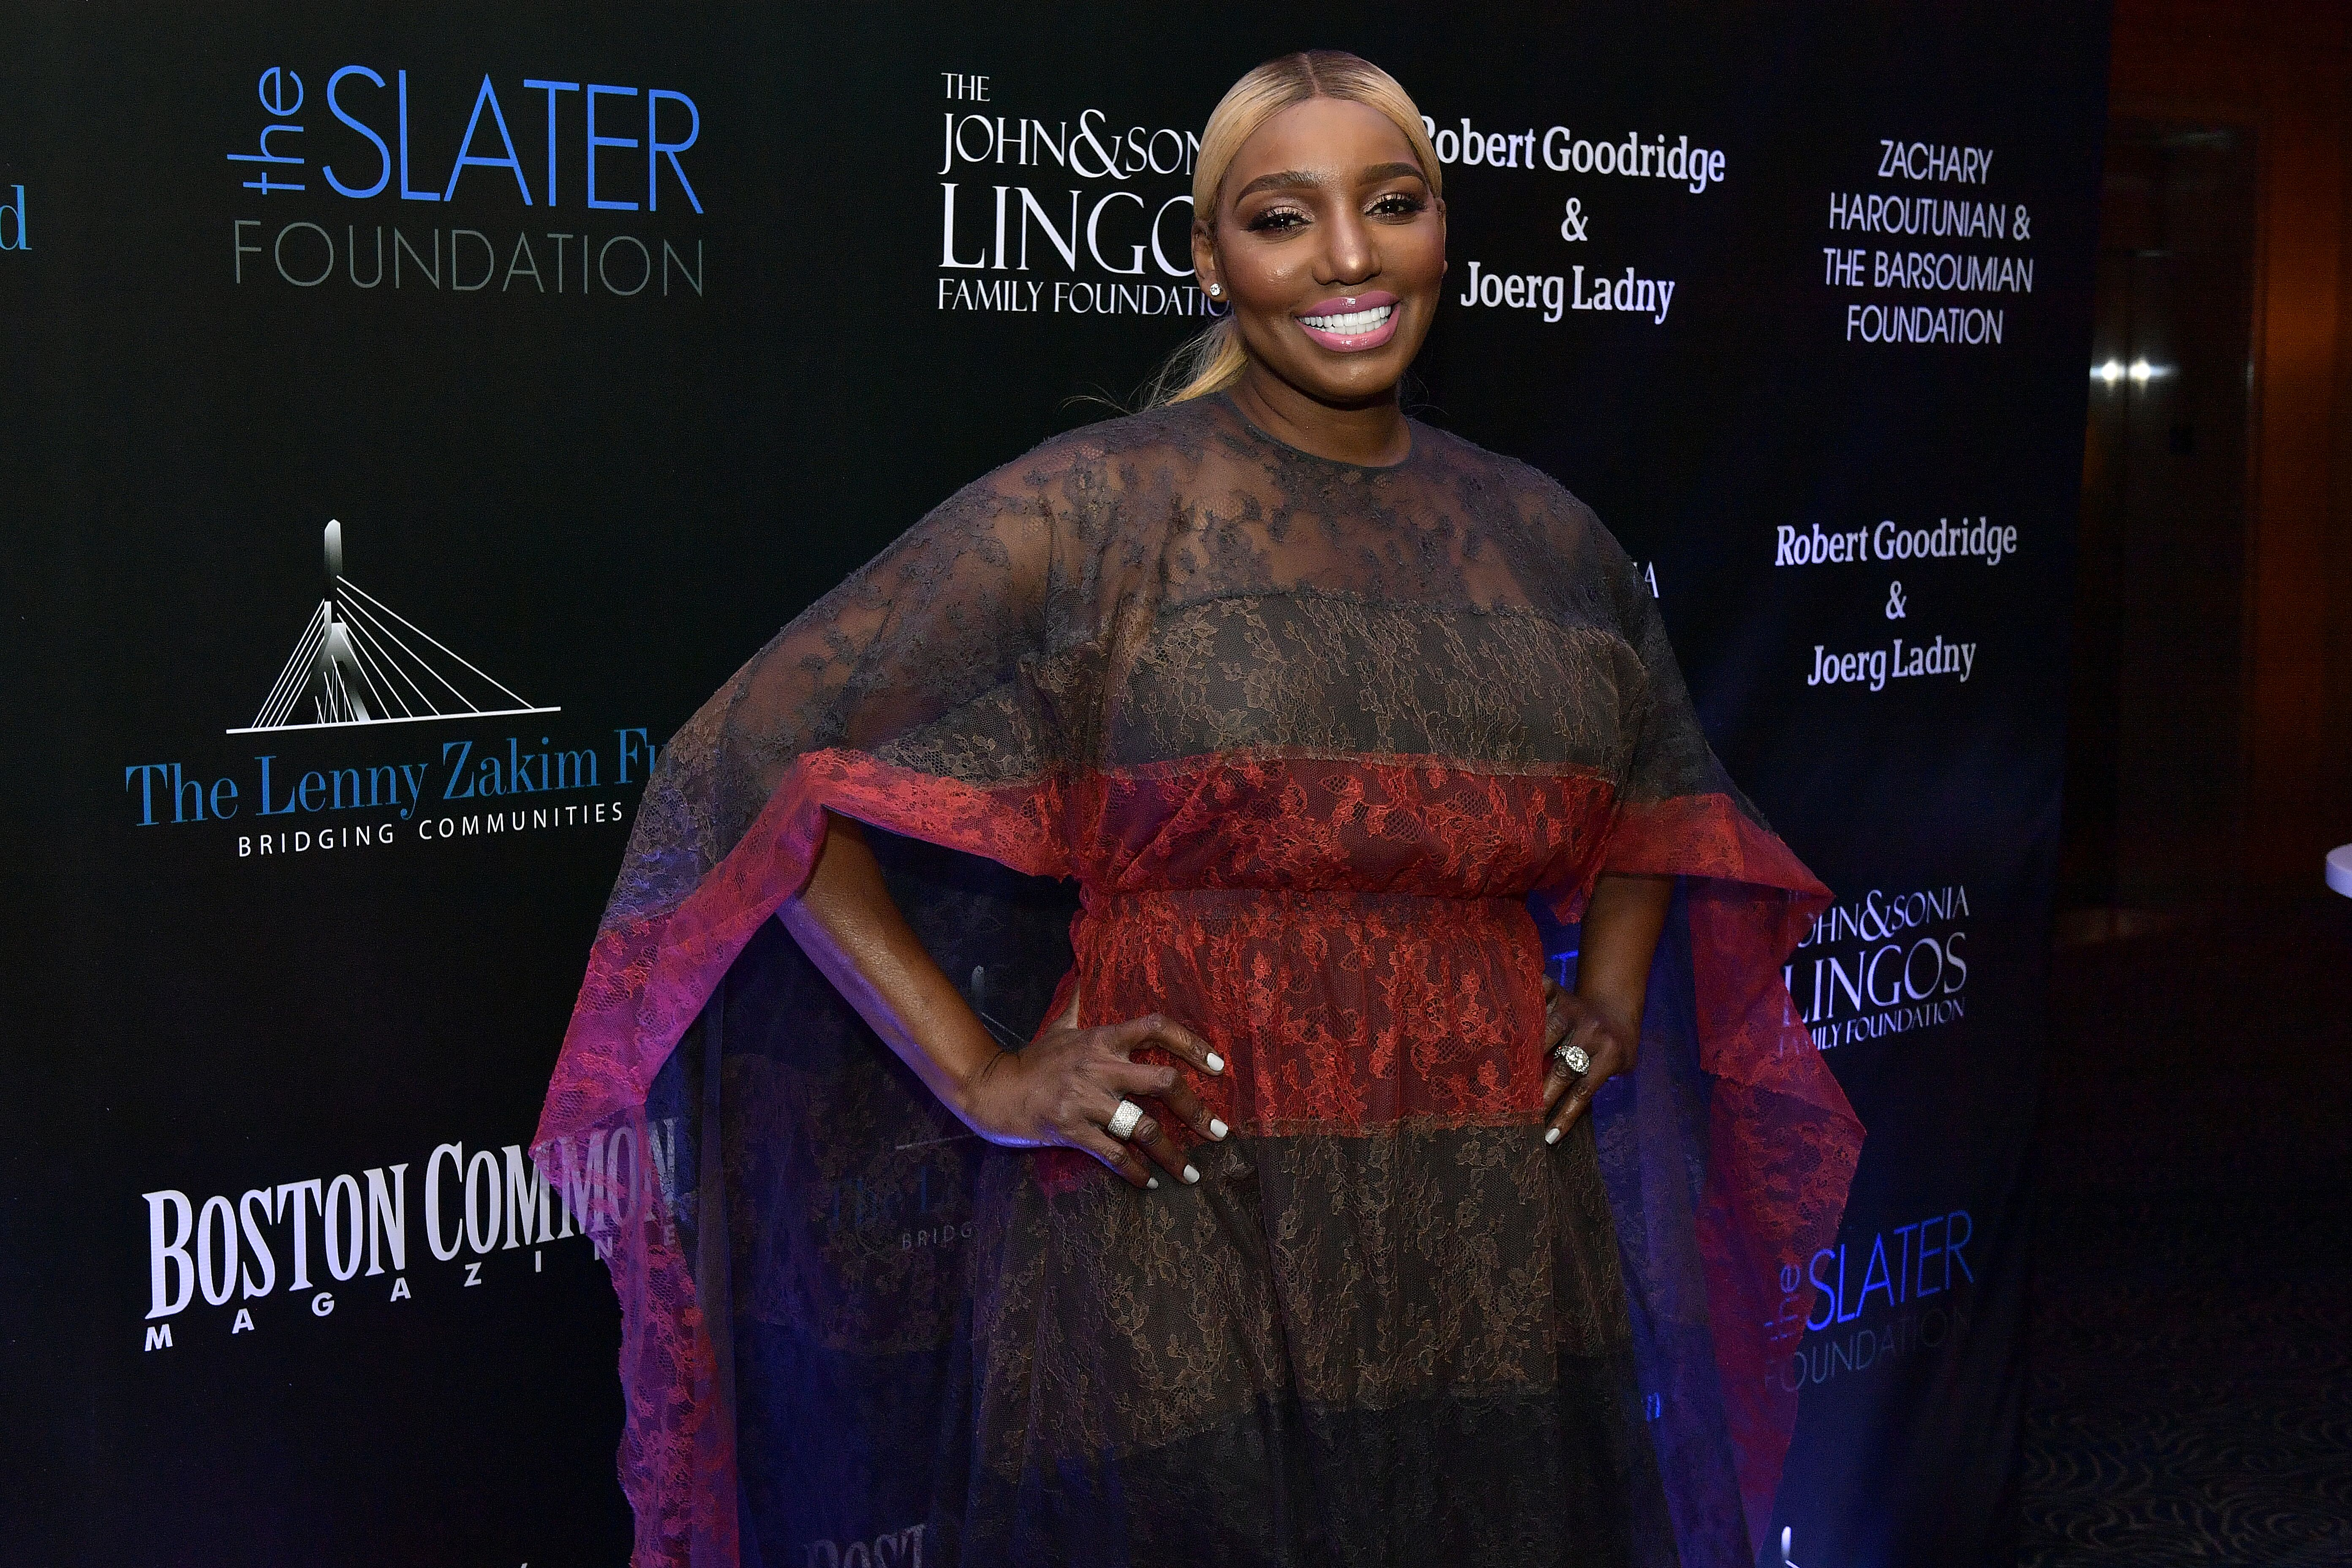 RHOA star NeNe Leakes at a Slater Foundation event/ Source: Getty Images